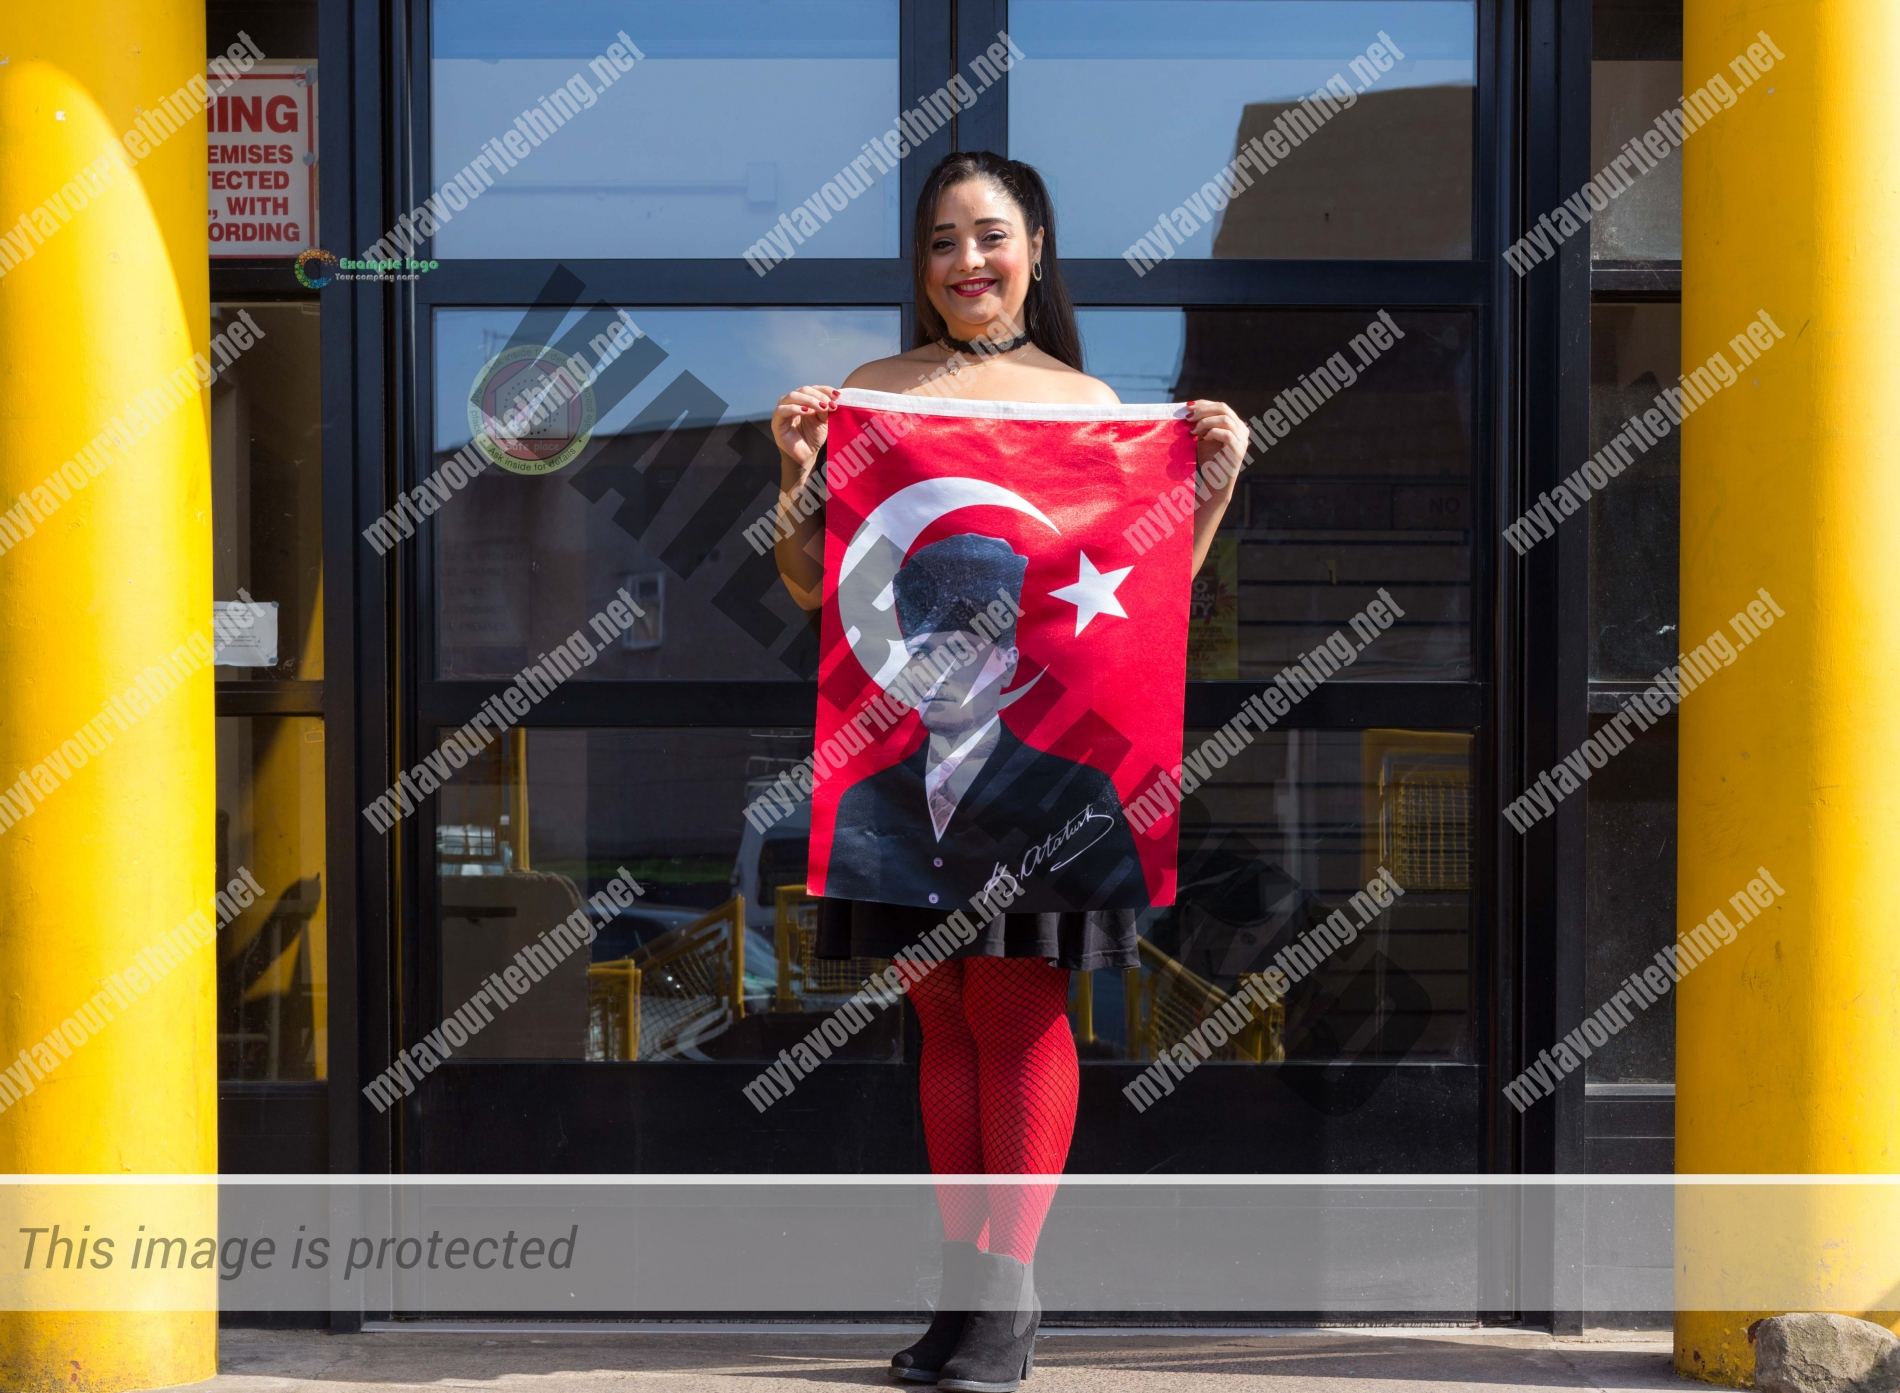 Flautist Koza Unal with the flag of Turkey featuring Ataturk, outside the Malcolm X Centre in Bristol